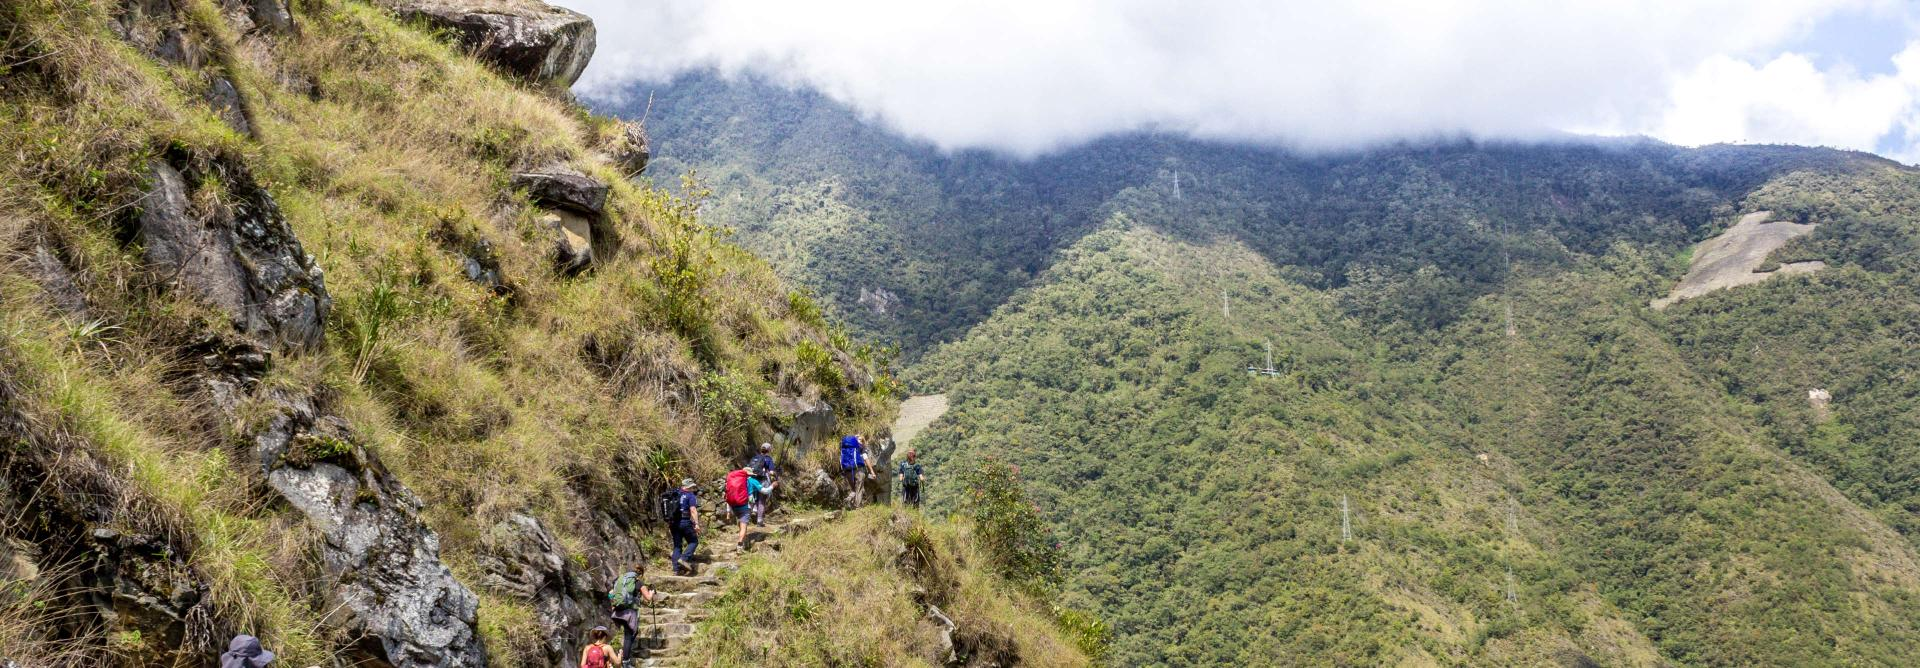 Trek to Machu Picchu steps